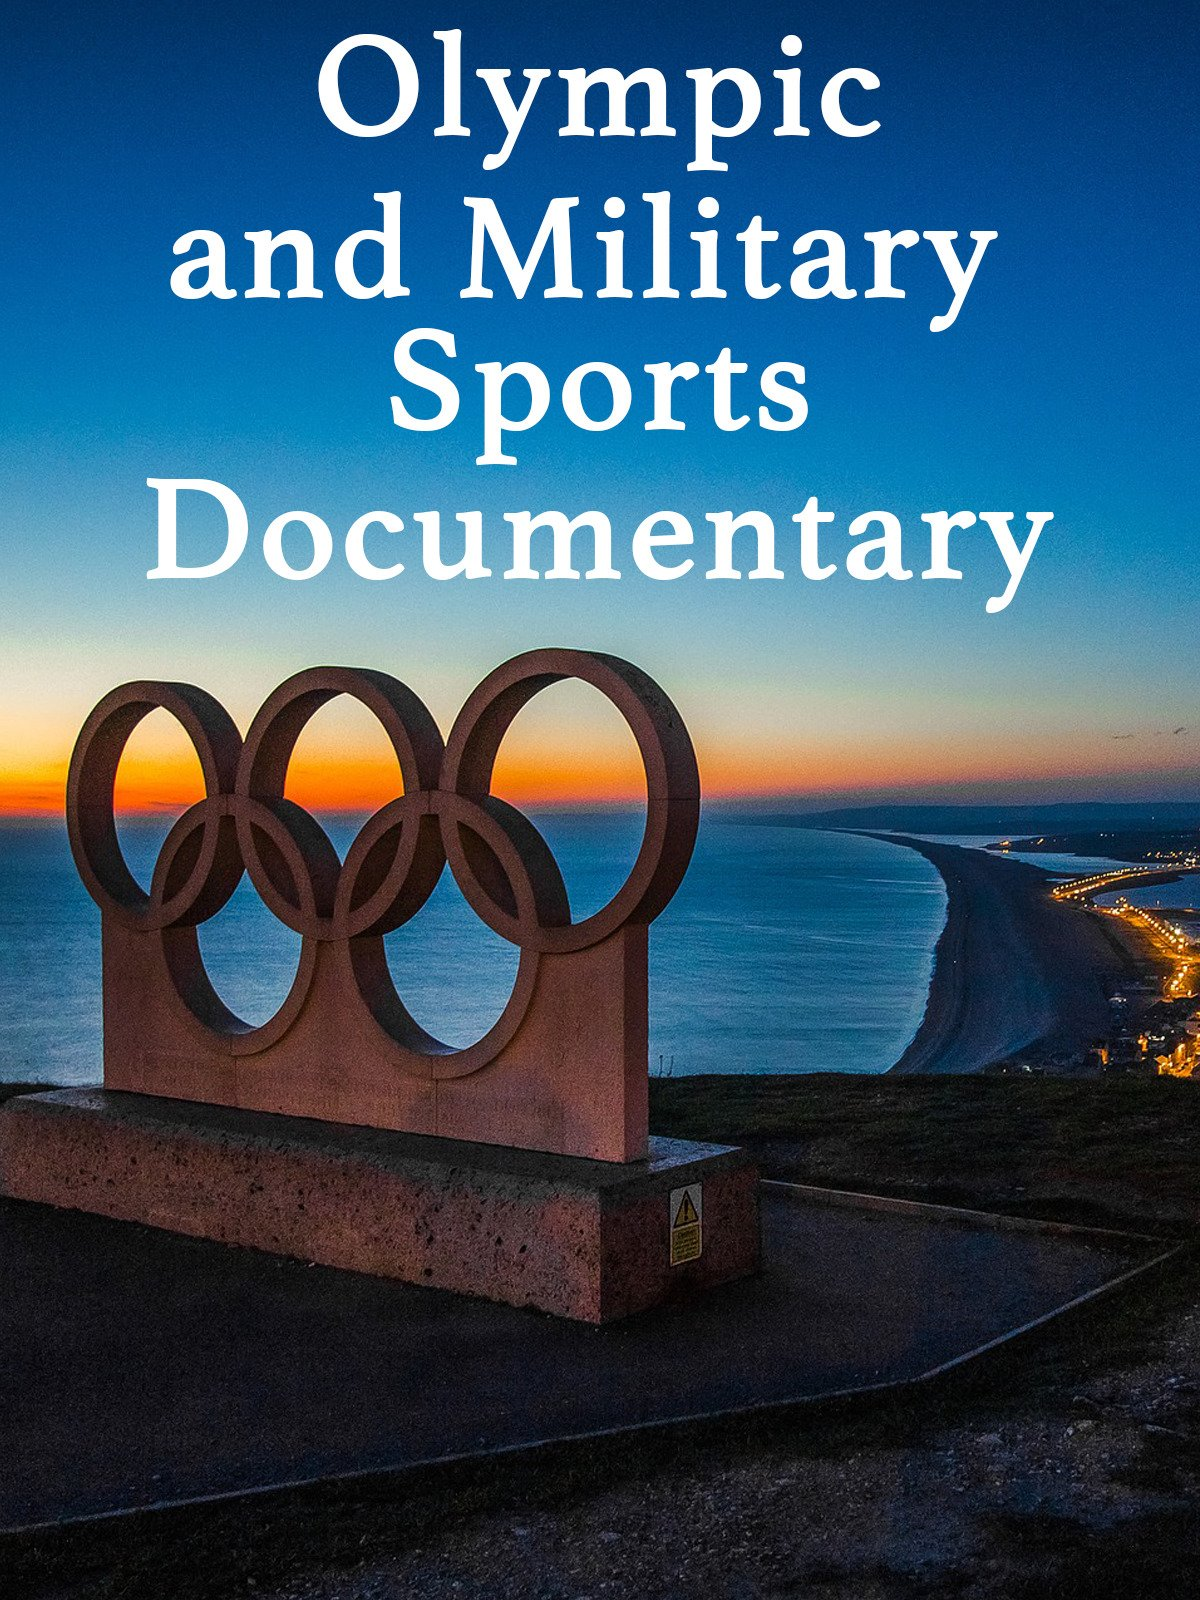 Olympic and Military Sports Documentary